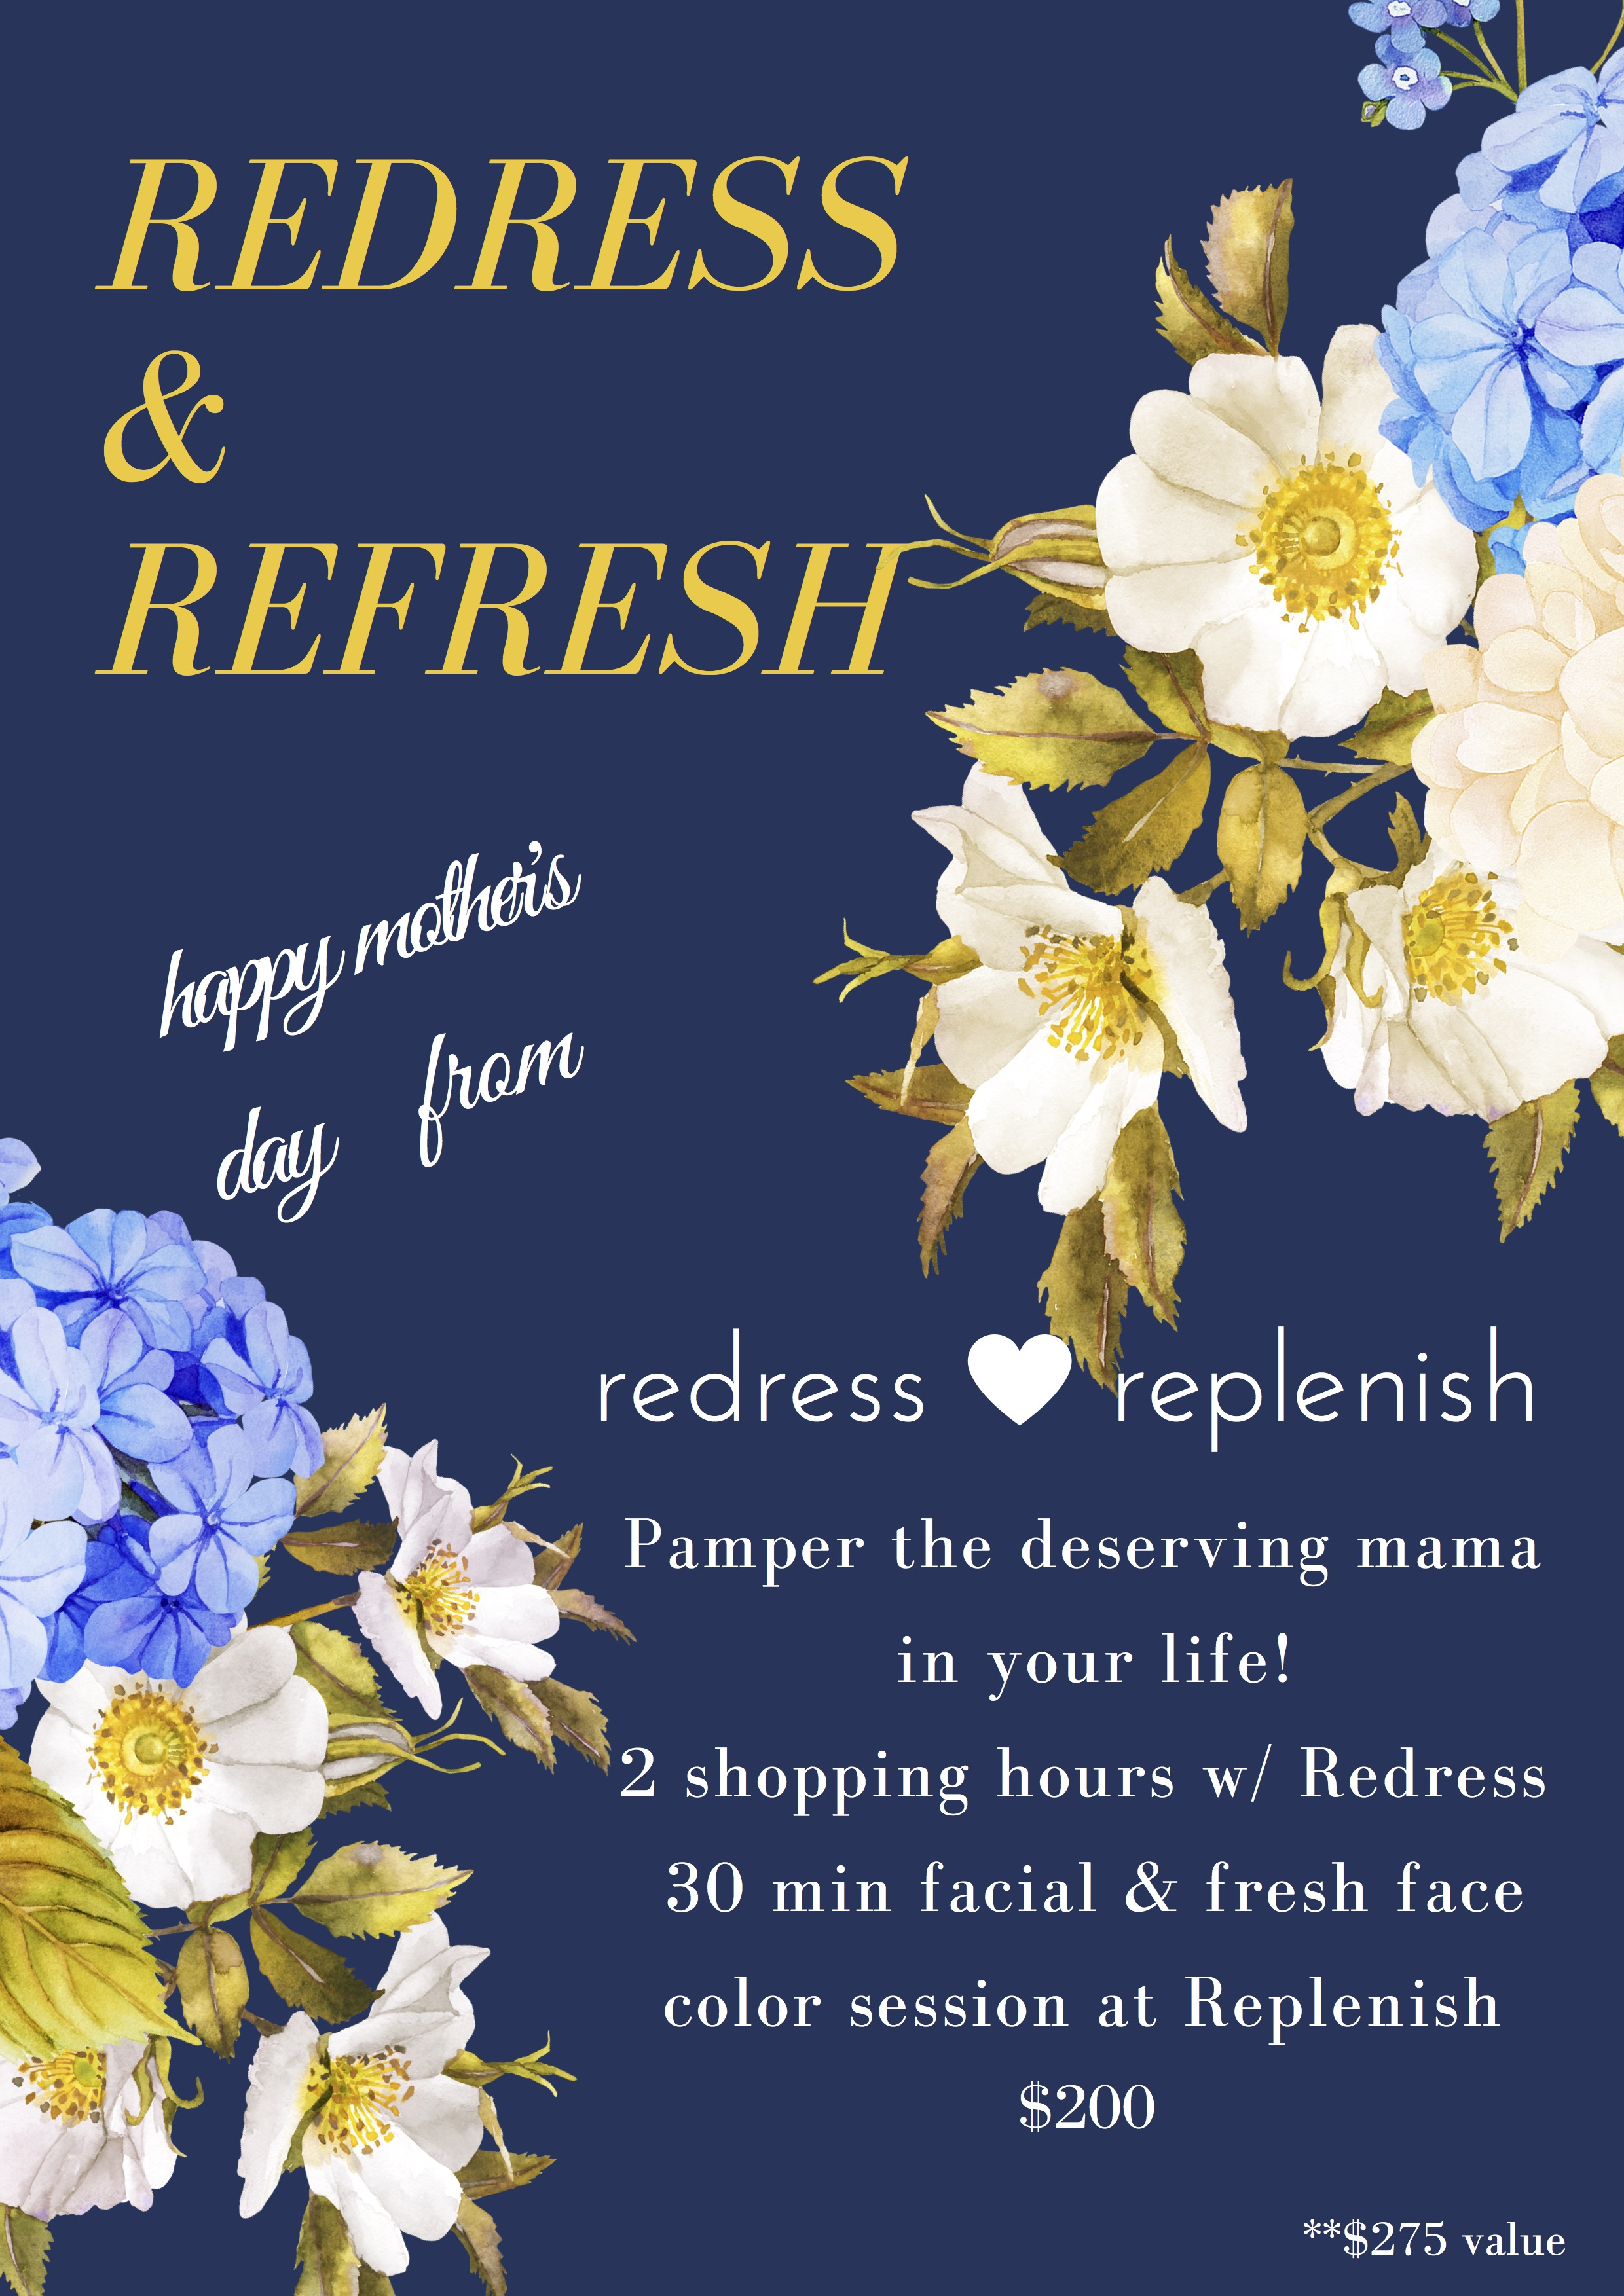 The perfect mothers day gift redress a 275 value for 200 email us at redresscolumbusyahoo to purchase happy mothers day to all of our clients friends and special mamas in our lives m4hsunfo